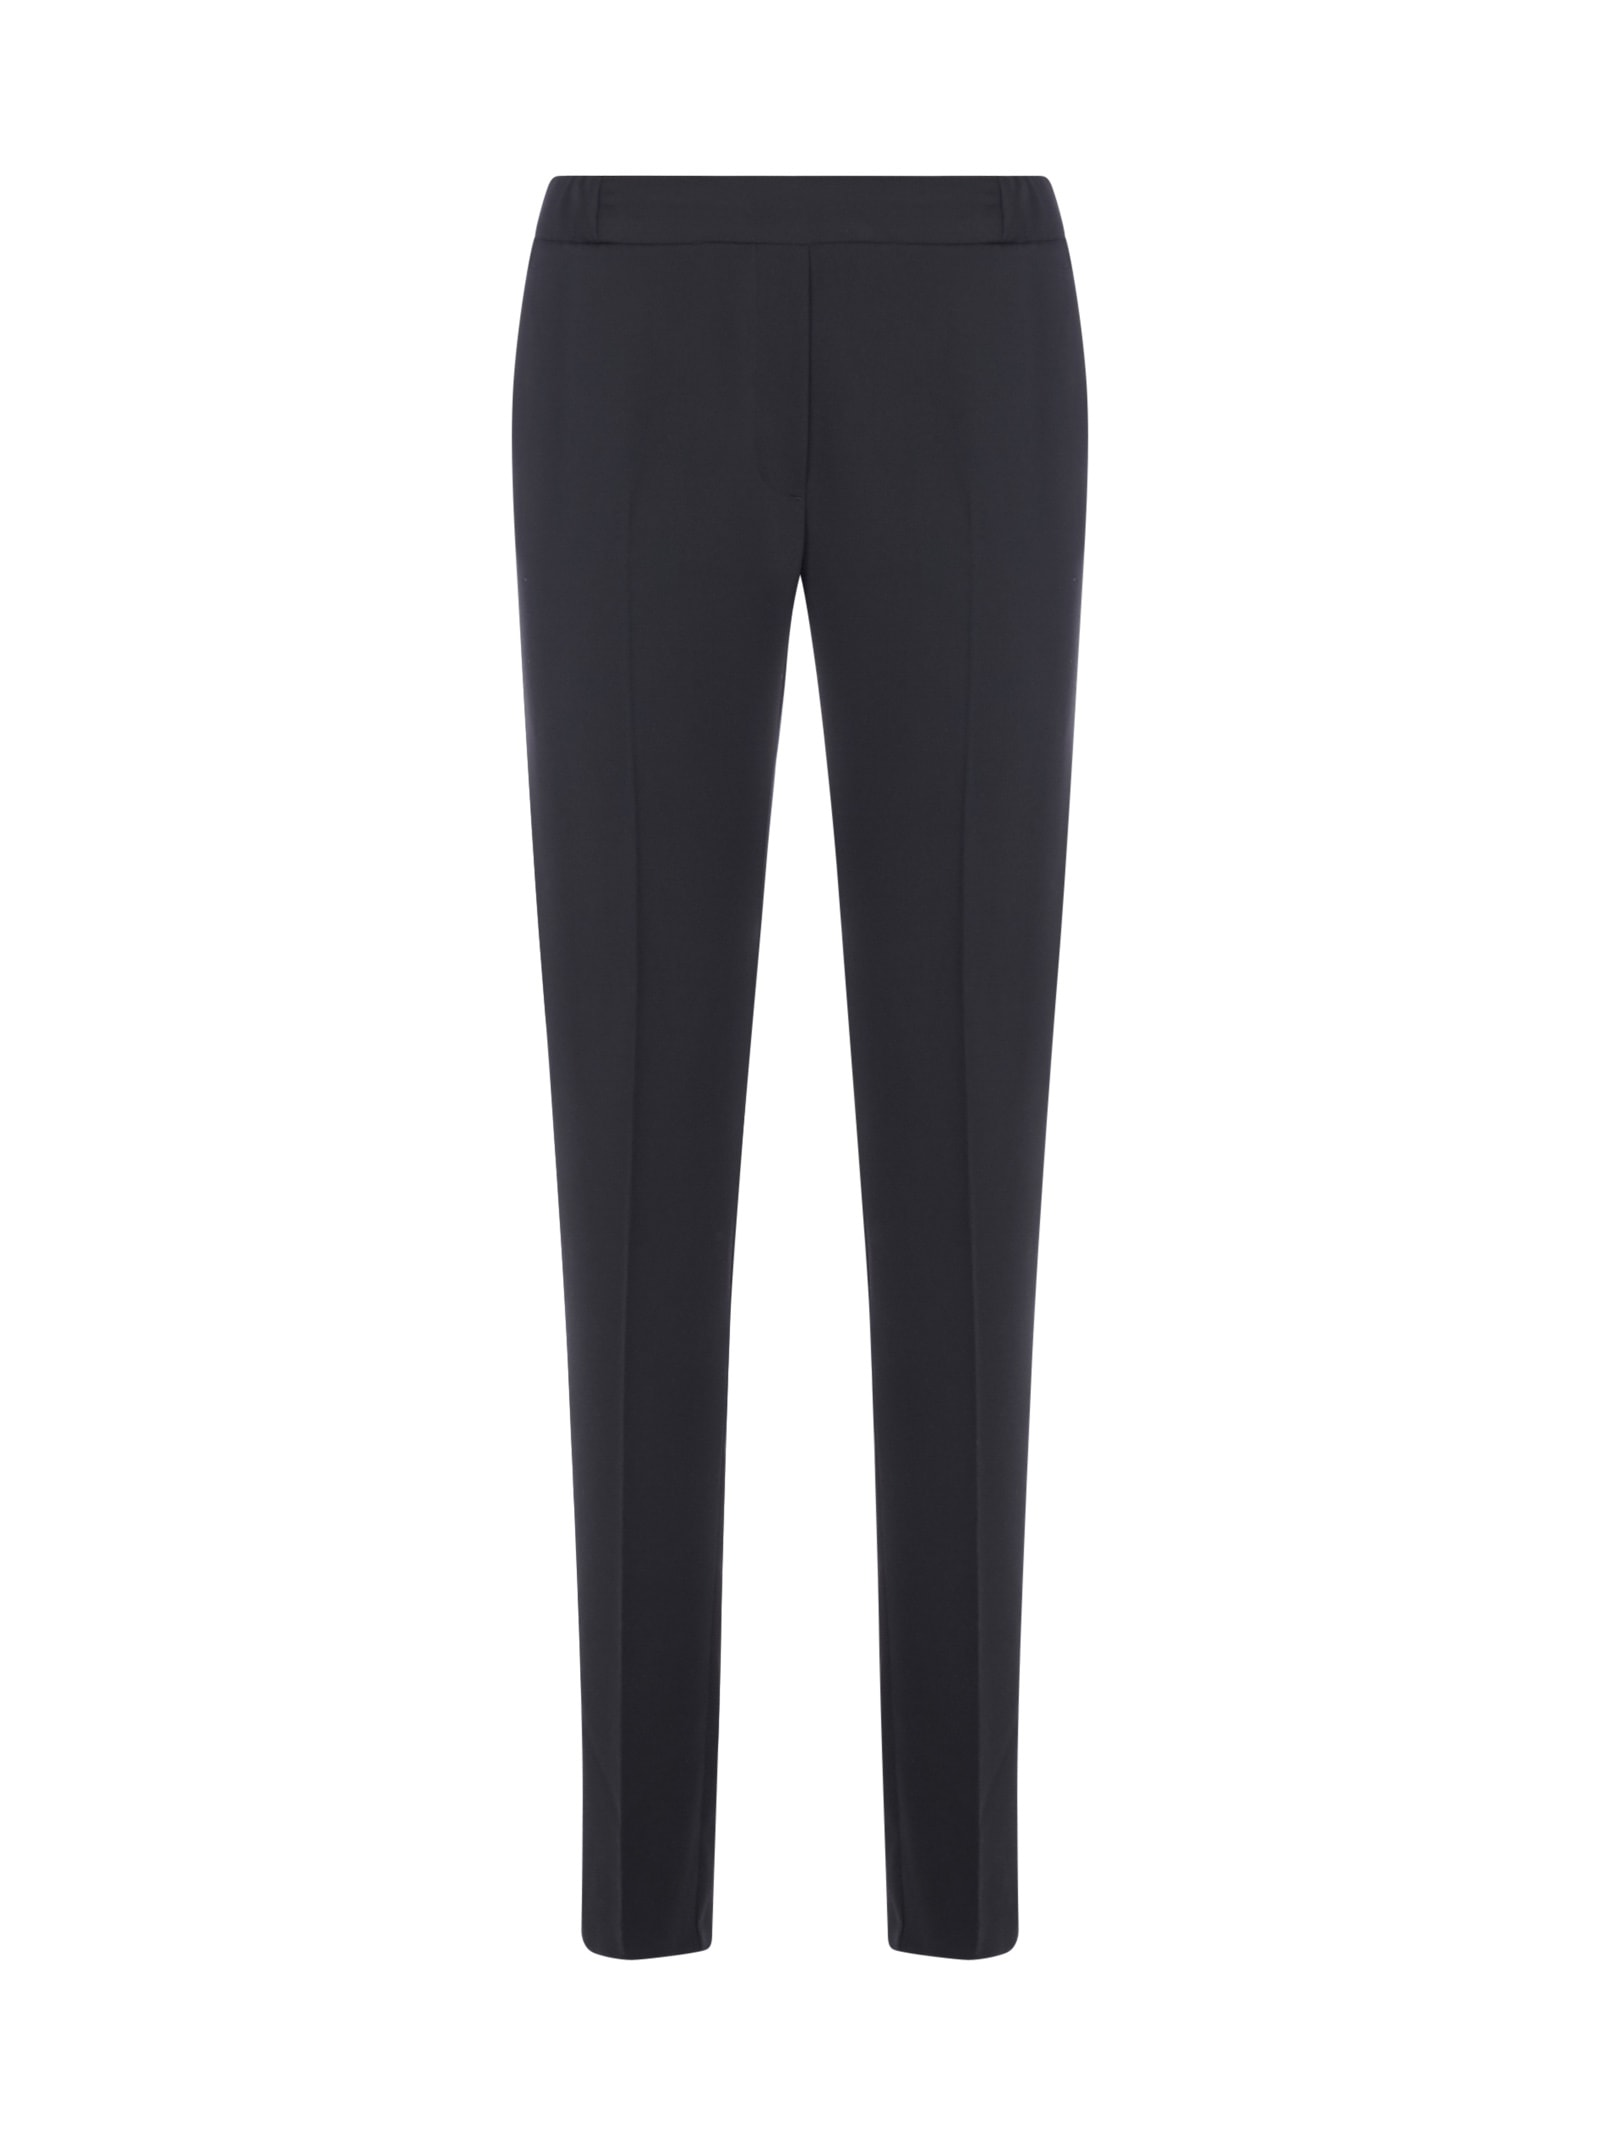 MM6 Maison Margiela Tapered Slim-fit Trousers